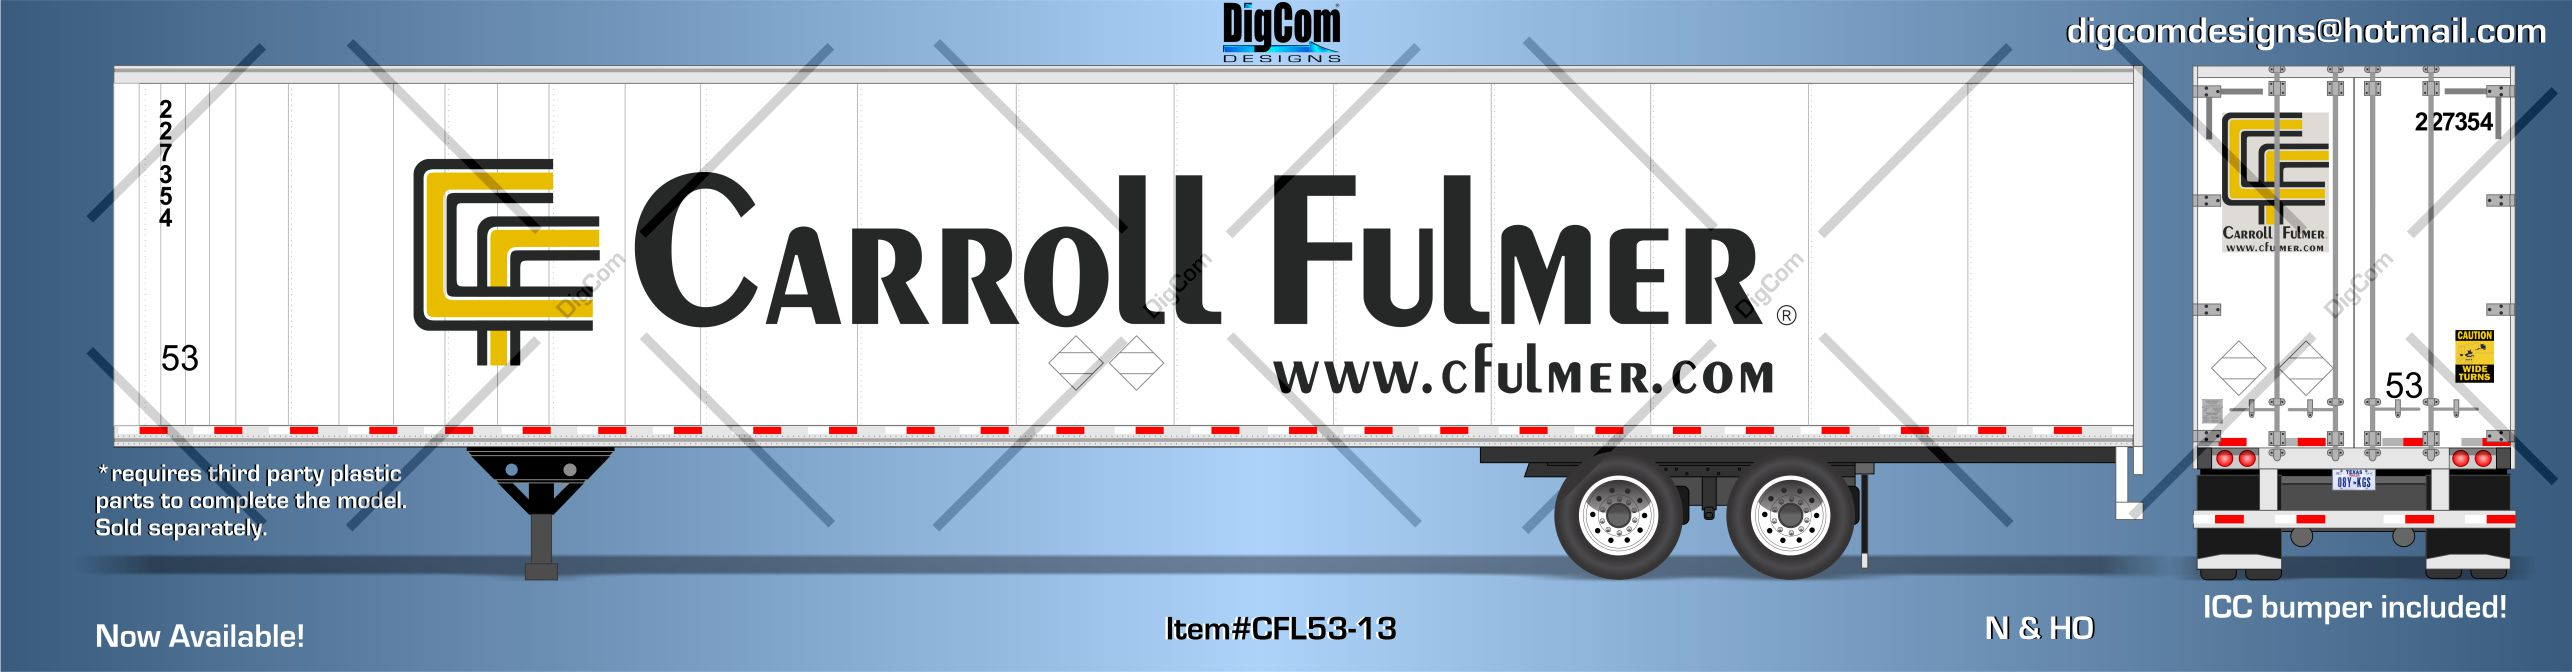 CARROLL FULMER TRAILER DESIGN.jpg